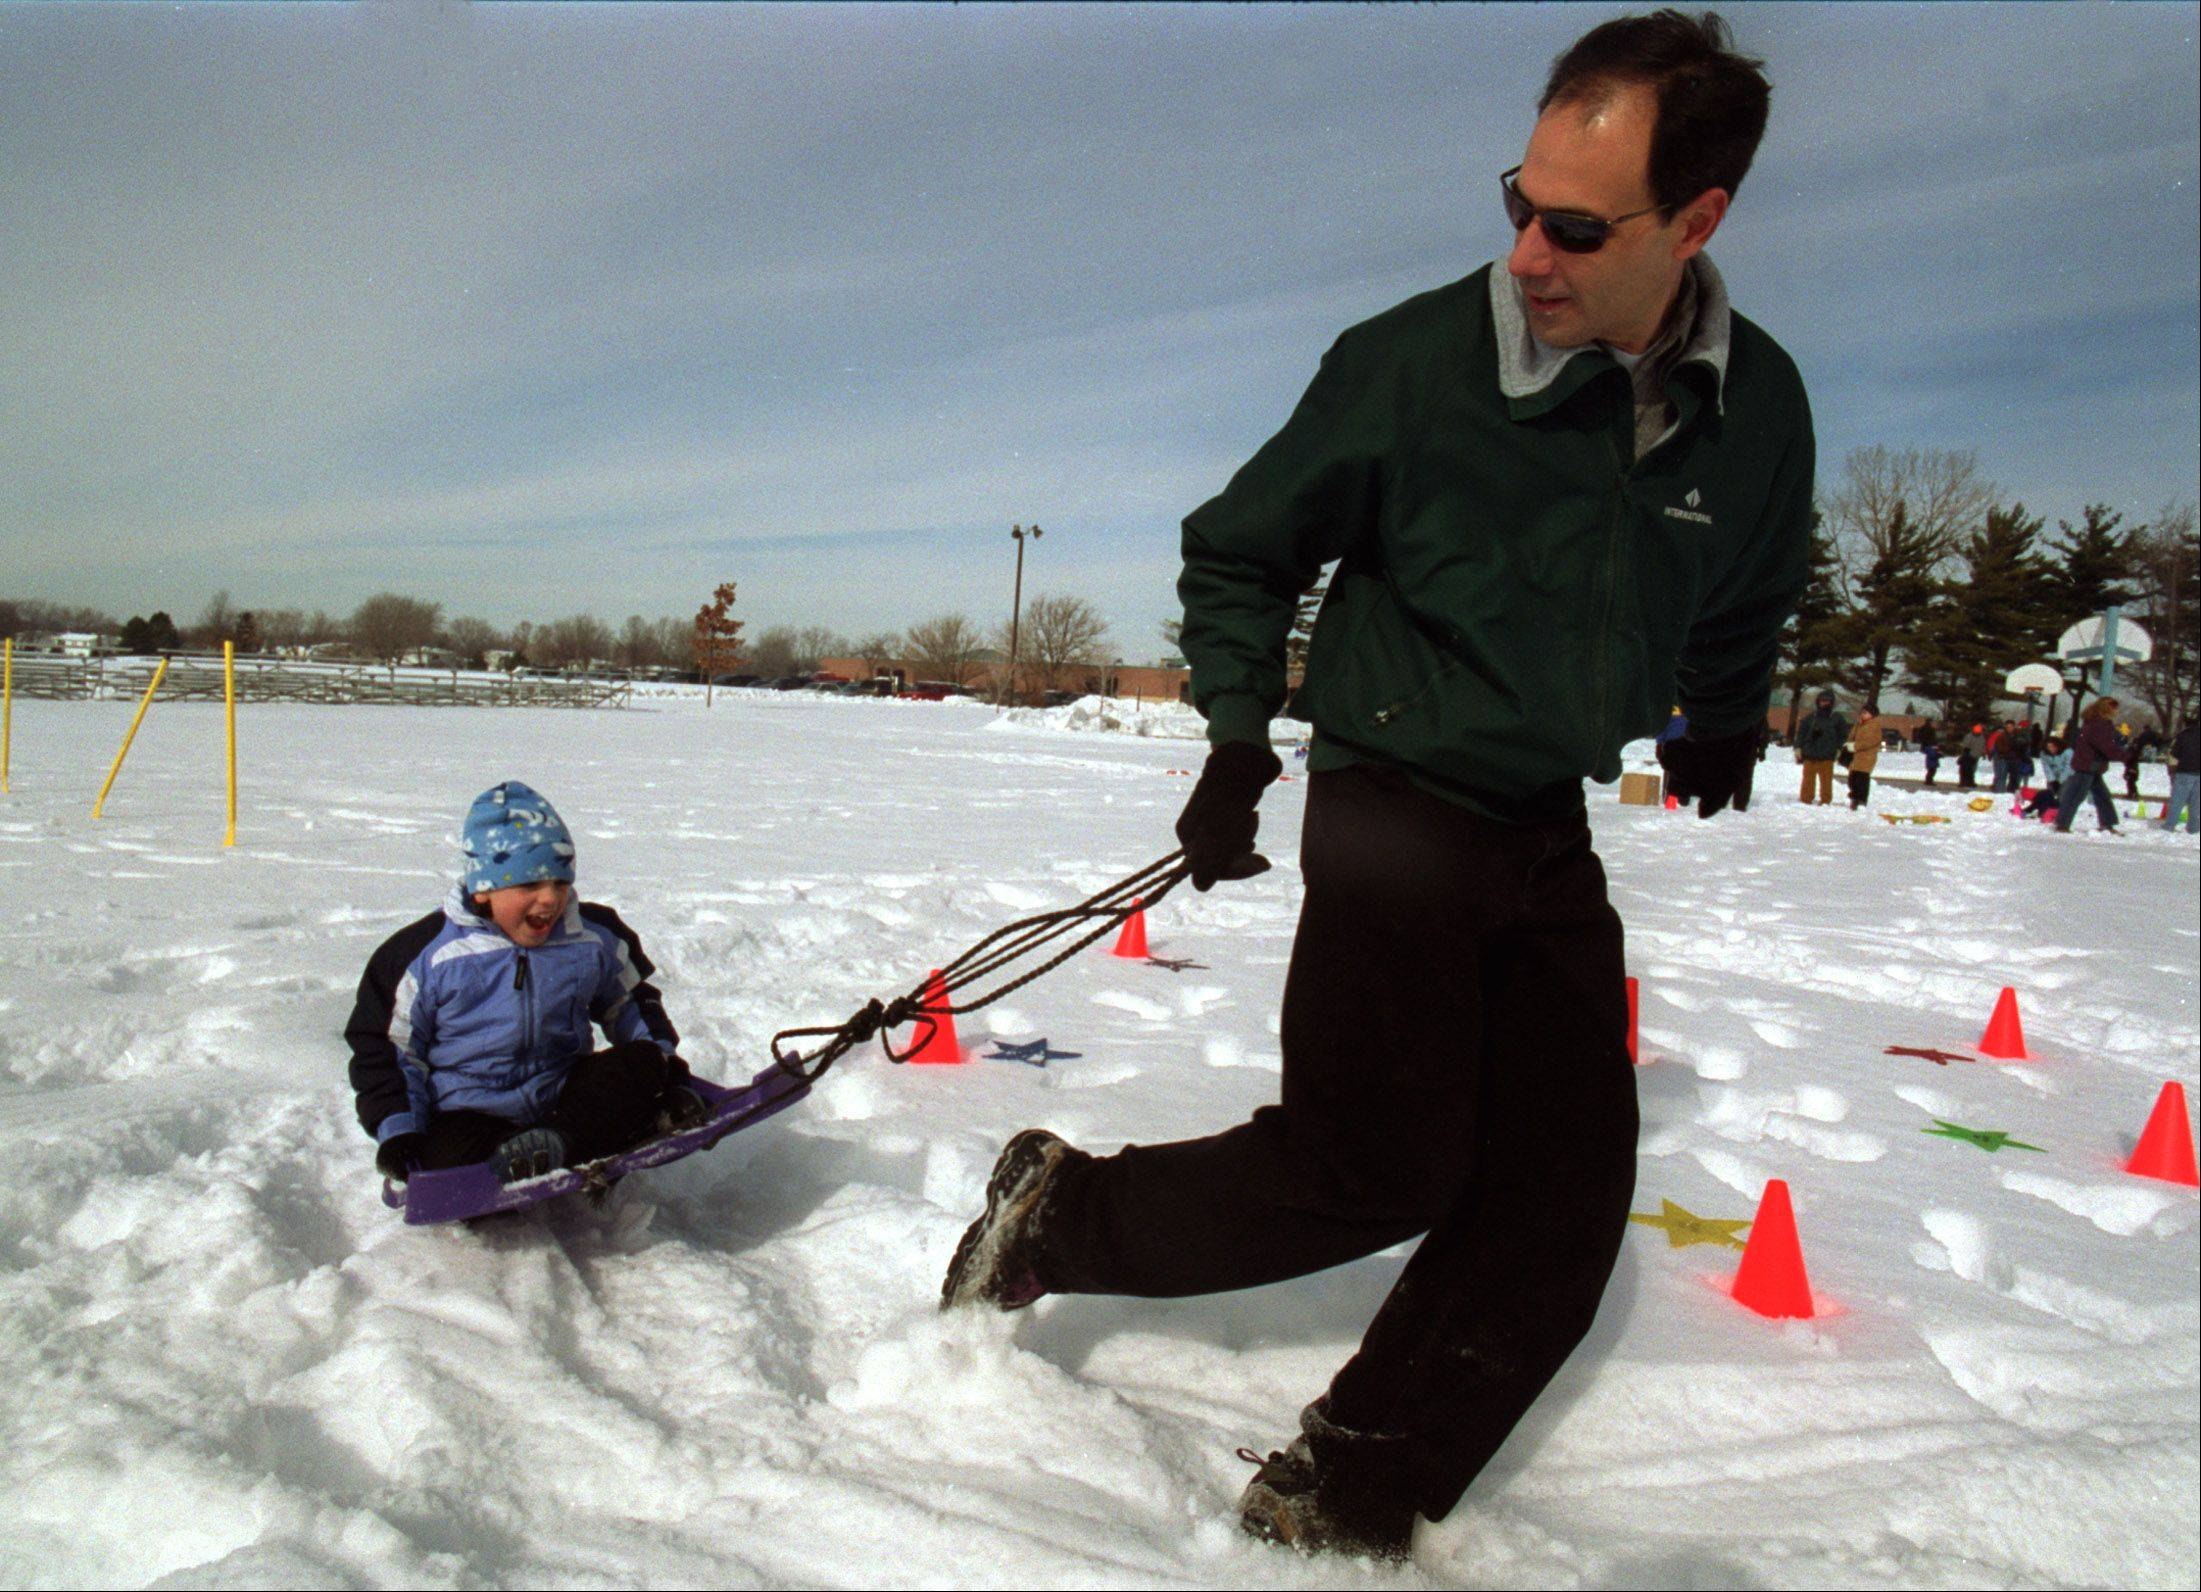 Lombard Park District's Winter Carnival runs 1:30 to 4 p.m. Saturday at Sunset Knoll Recreation Center, 820 S. Finley Road, Lombard. Activities include carnival games, a balloon artist, snow painting, train rides, s'mores, hot cocoa, popcorn, arts and crafts. New this year, take silly or serious photos in front of the green screen and receive a photo to take home. Info: lombardparks.com or (630) 620-7322.